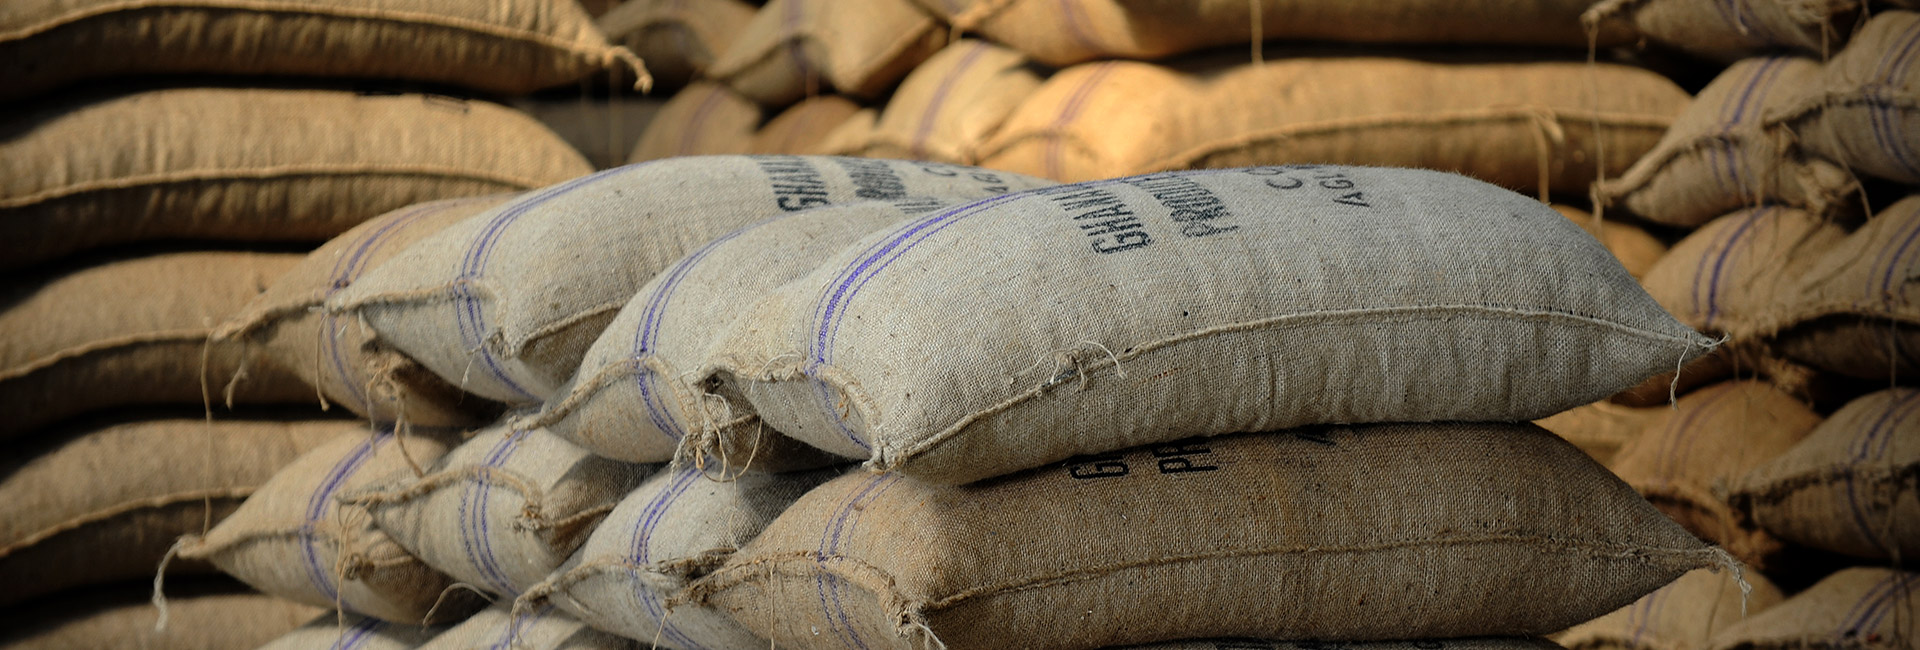 ghanaian cocoa beans in bags